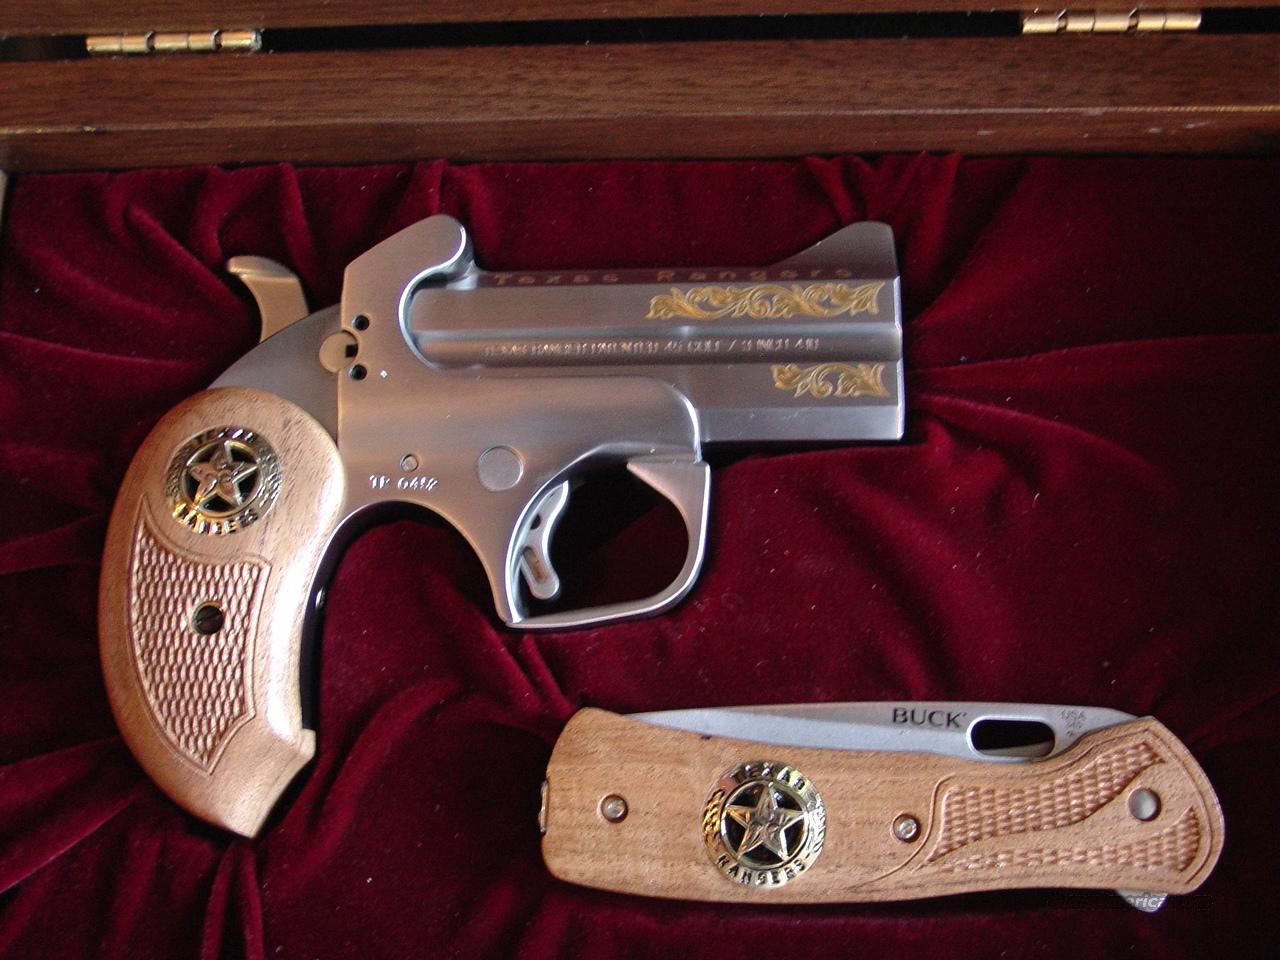 "Bond Arms- Rare Texas Rangers 200 year Commemorative,gold scroll engraved,wood grips with stars,matching wood Buck knife,& nice fitted wood & glass etched,locking presentation case 3 1/2"", 3""410 & 45LC  Guns > Pistols > Bond Derringers"